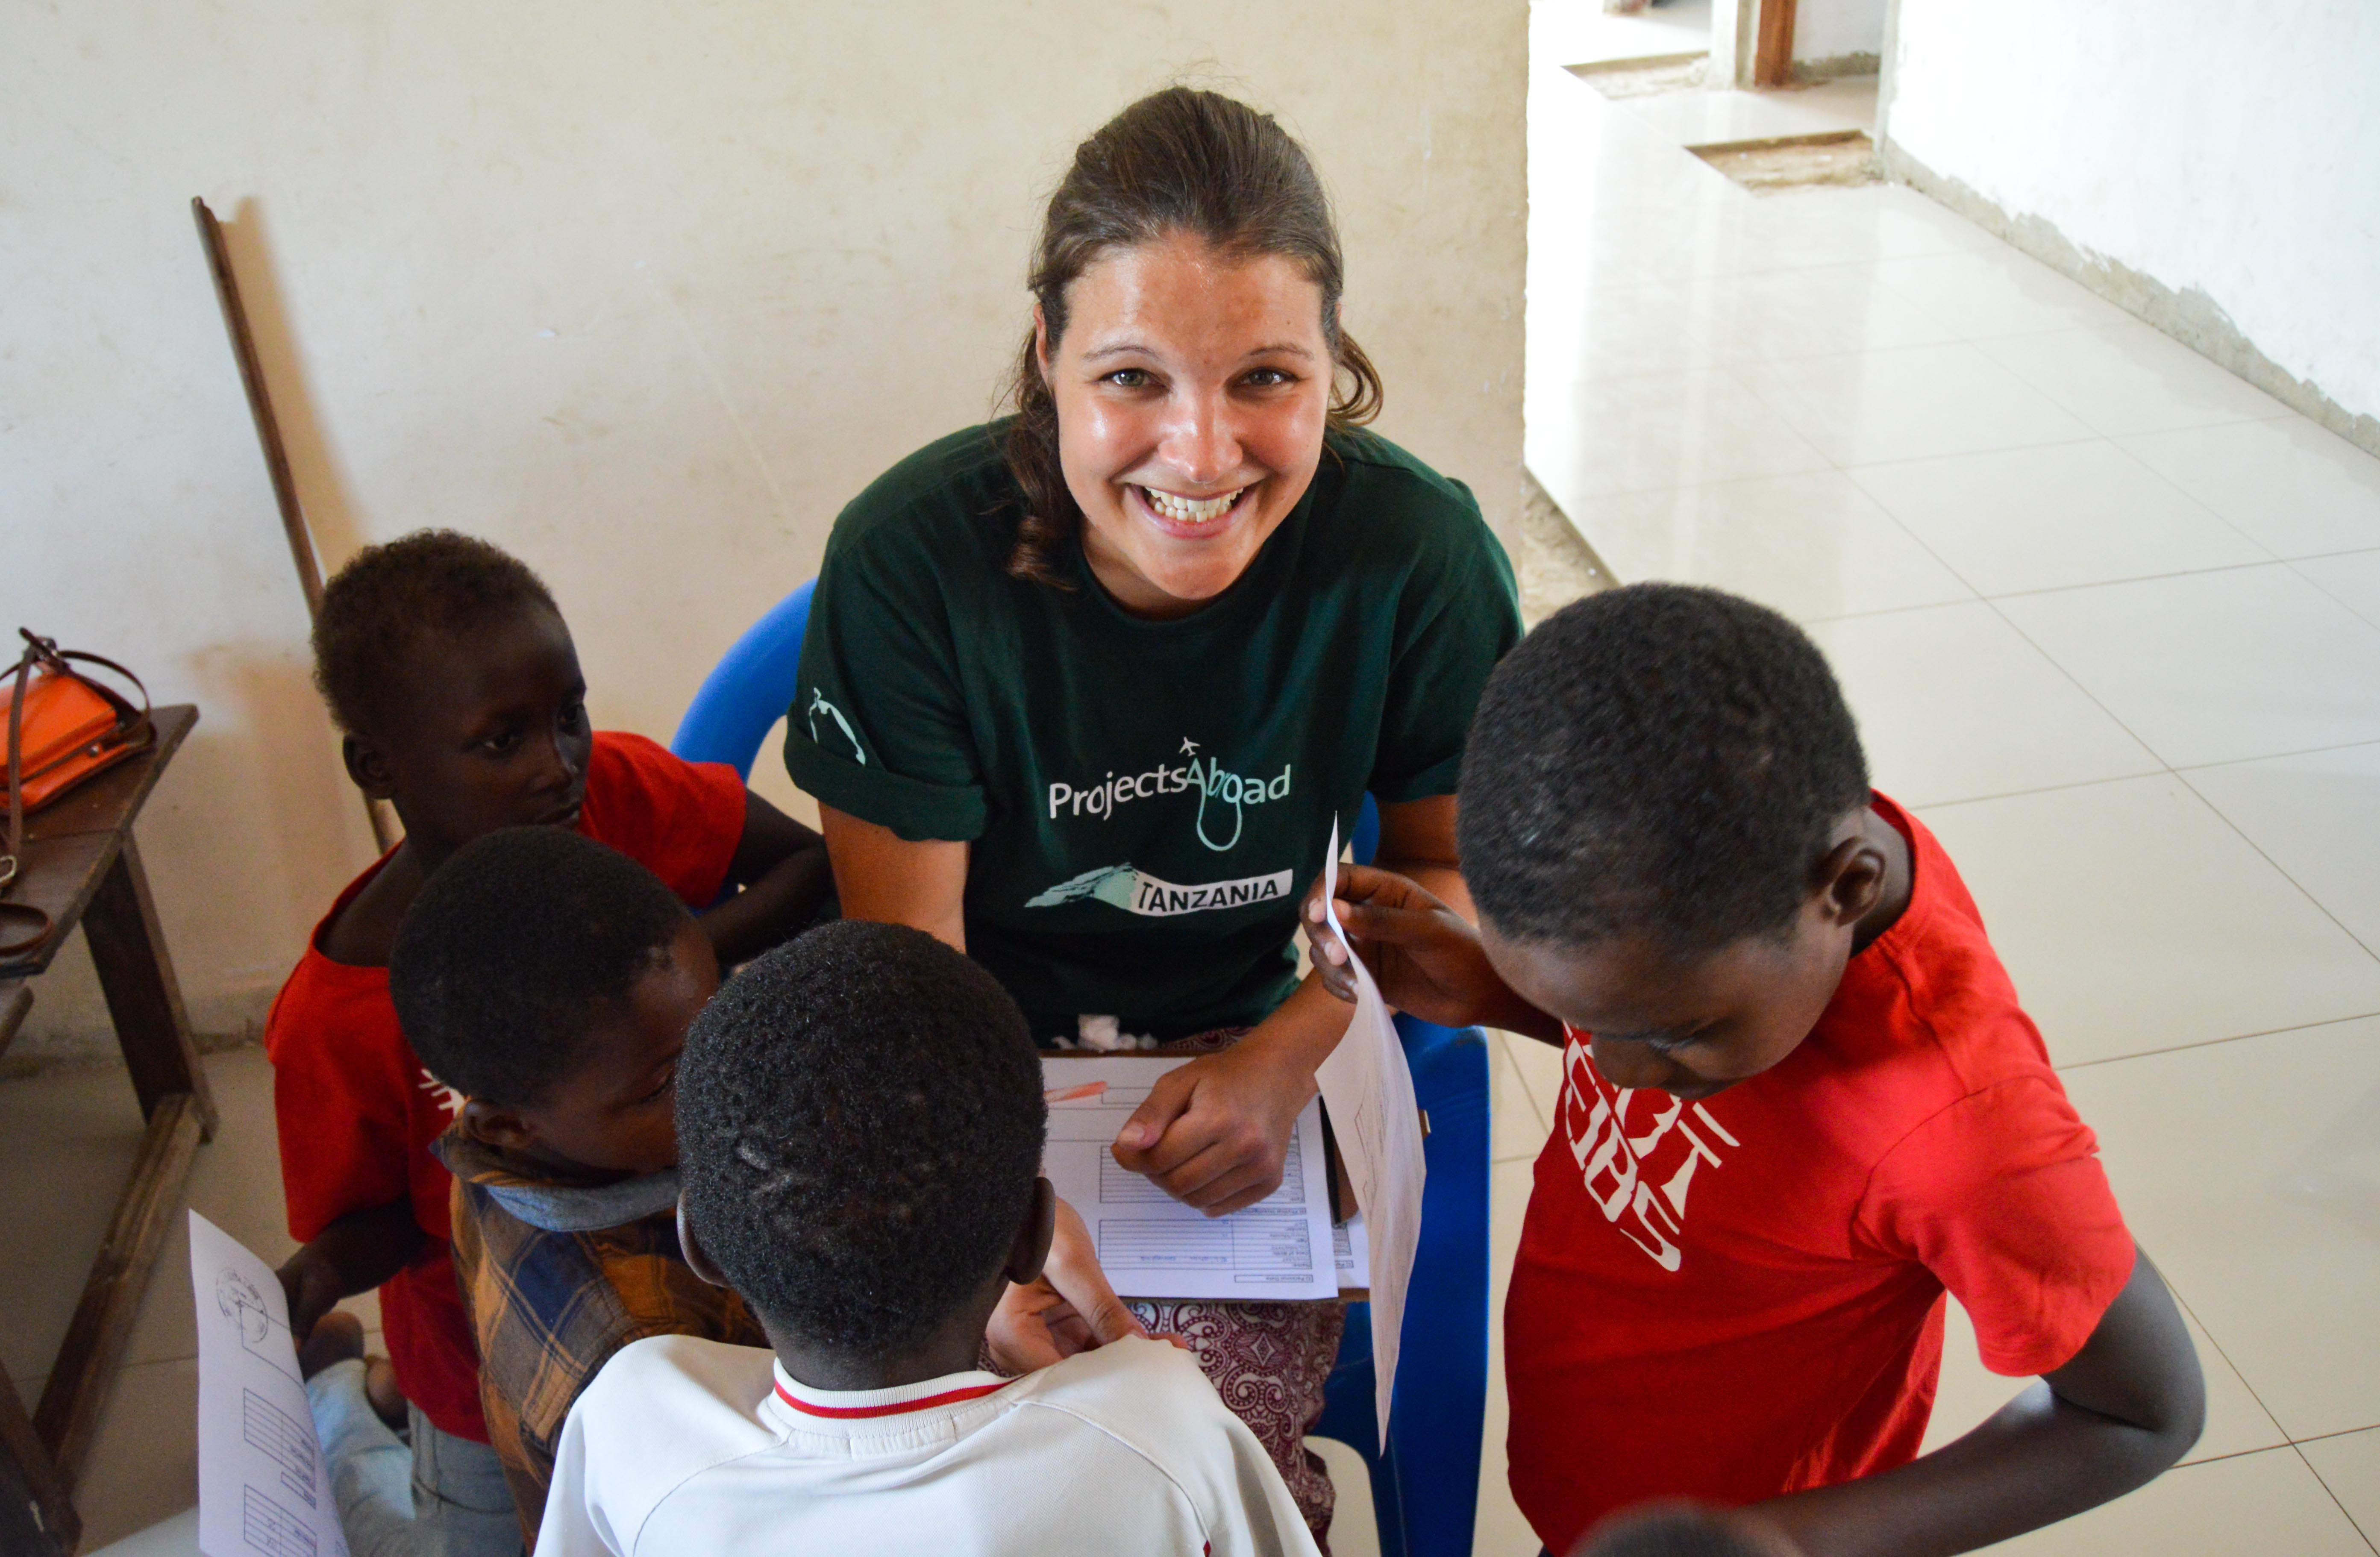 Female intern from Projects Abroad is pictured screening children during her nursing internship in Tanzania.